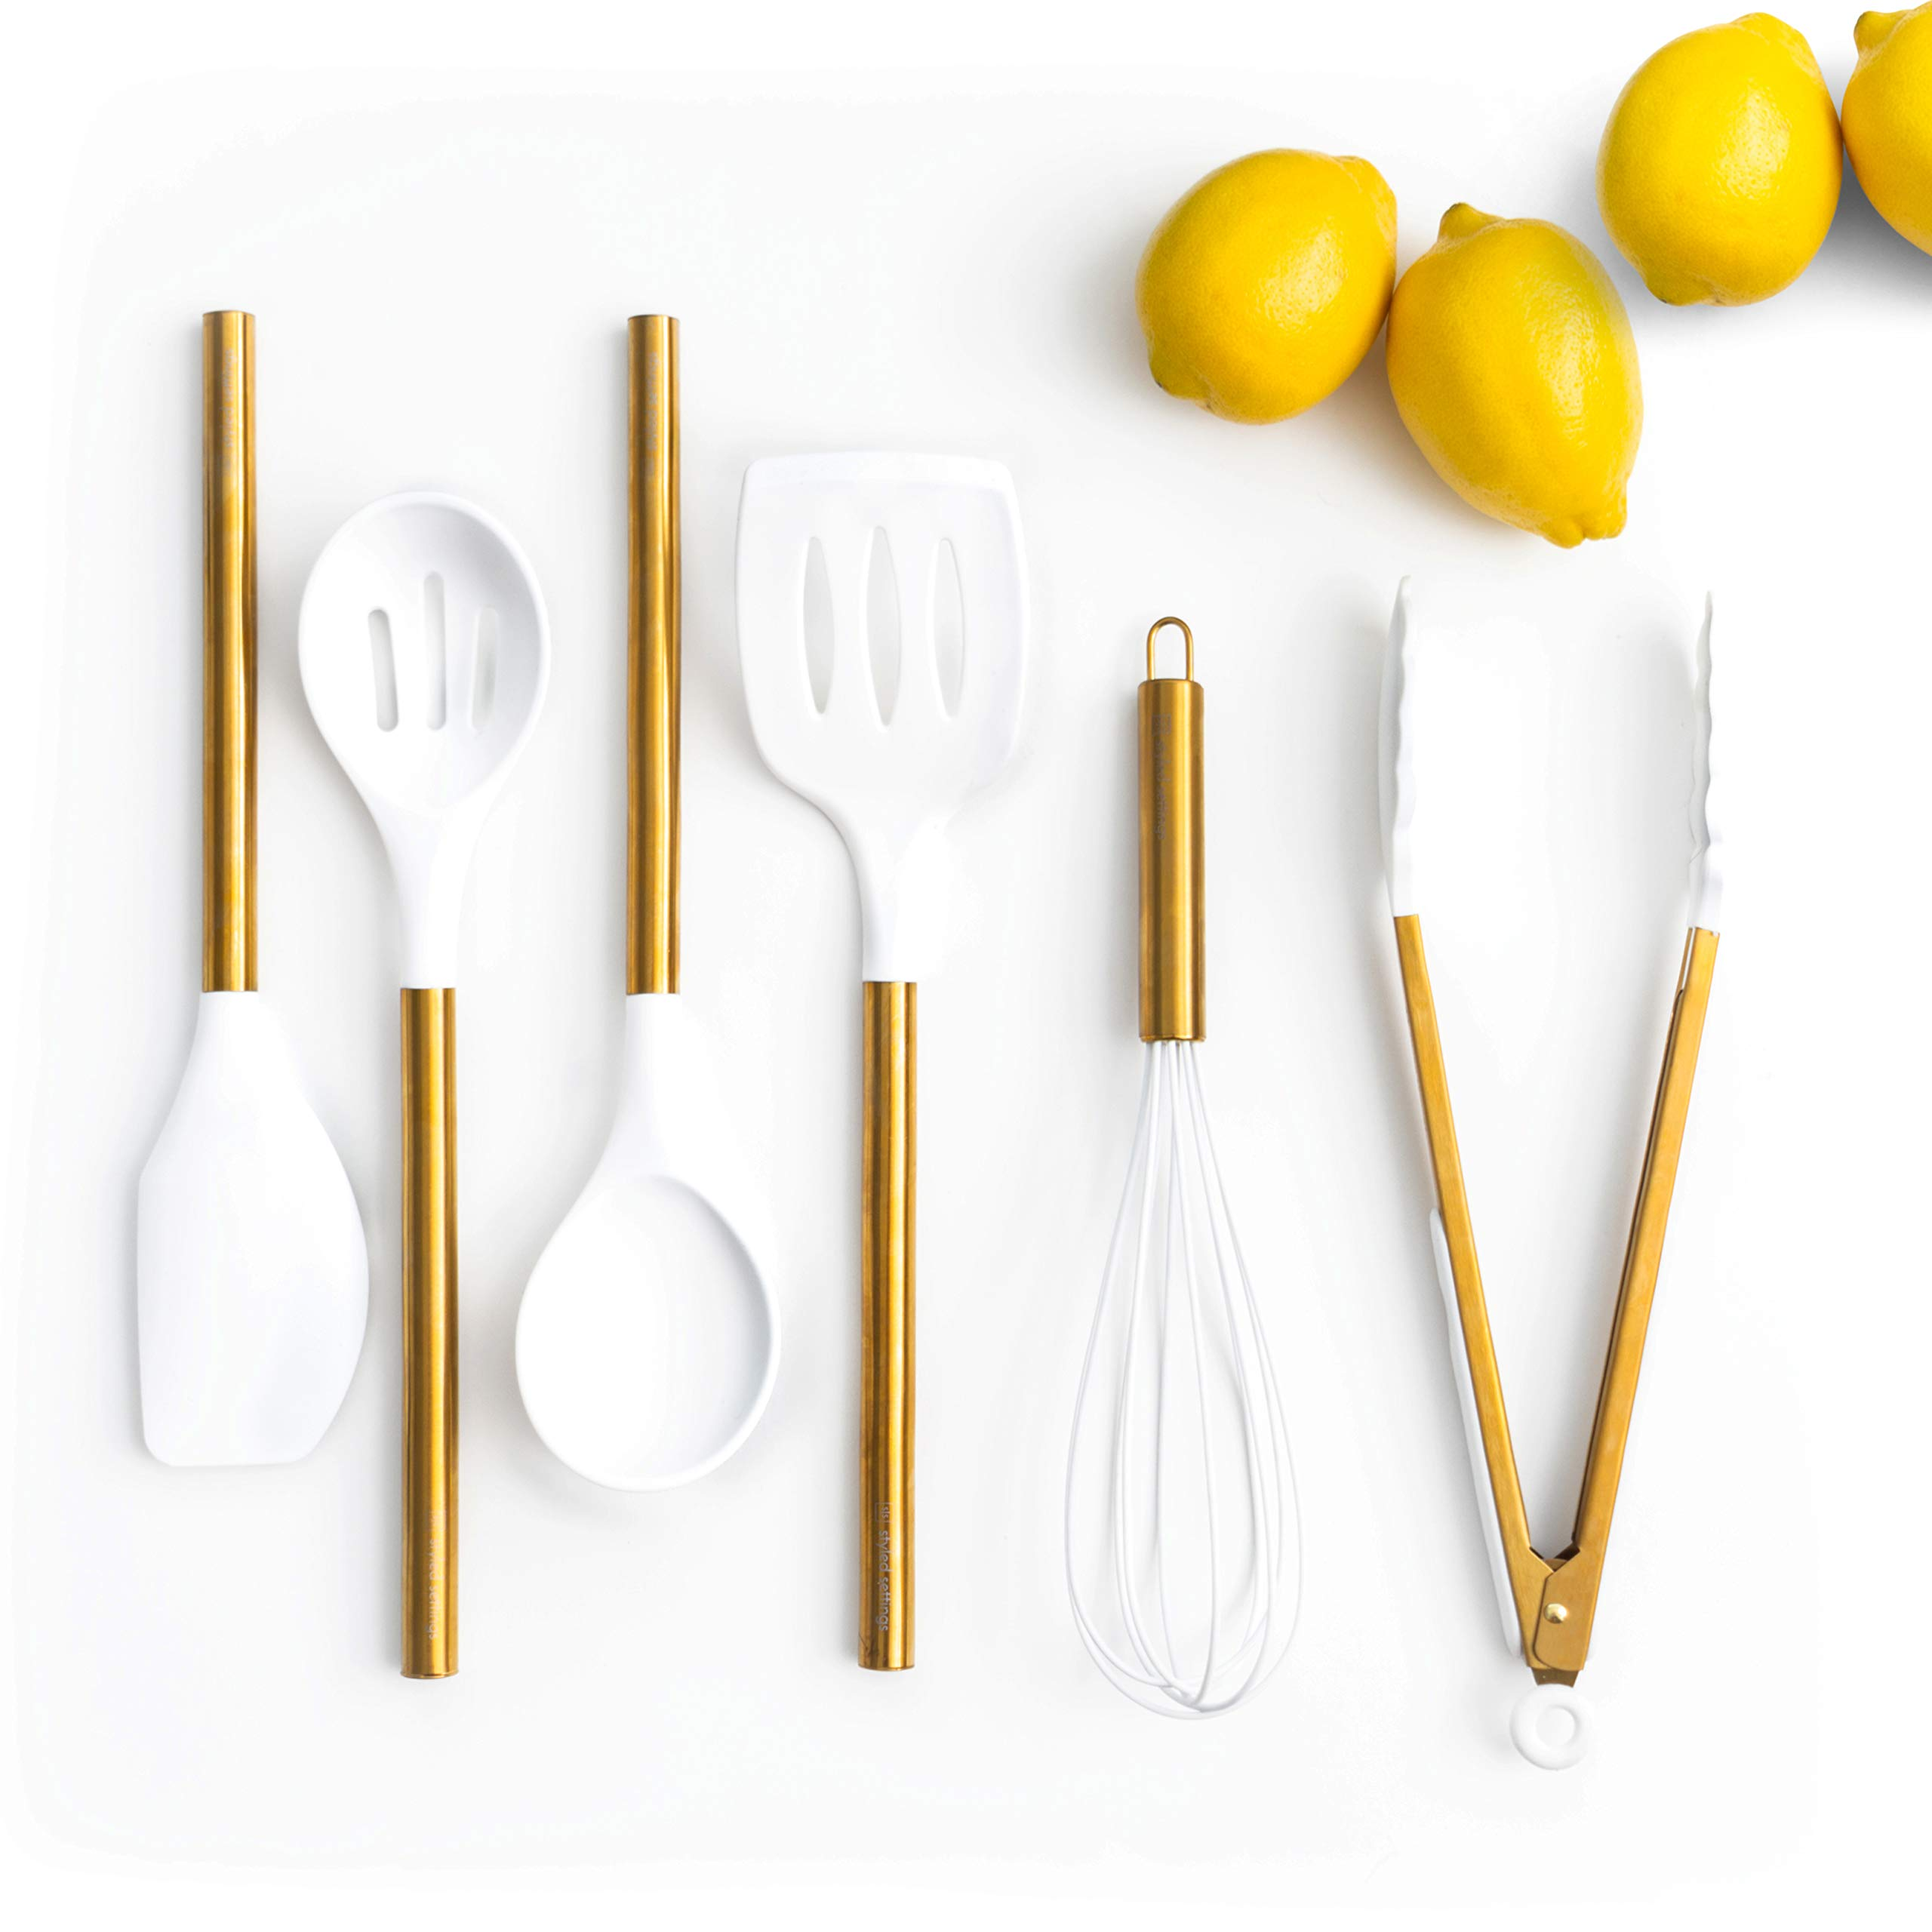 White Silicone and Gold Cooking Utensils for Modern Cooking and Serving, Stainless Steel Gold Serving Utensils - Spatulas for Non Stick Cookware by STYLED SETTINGS